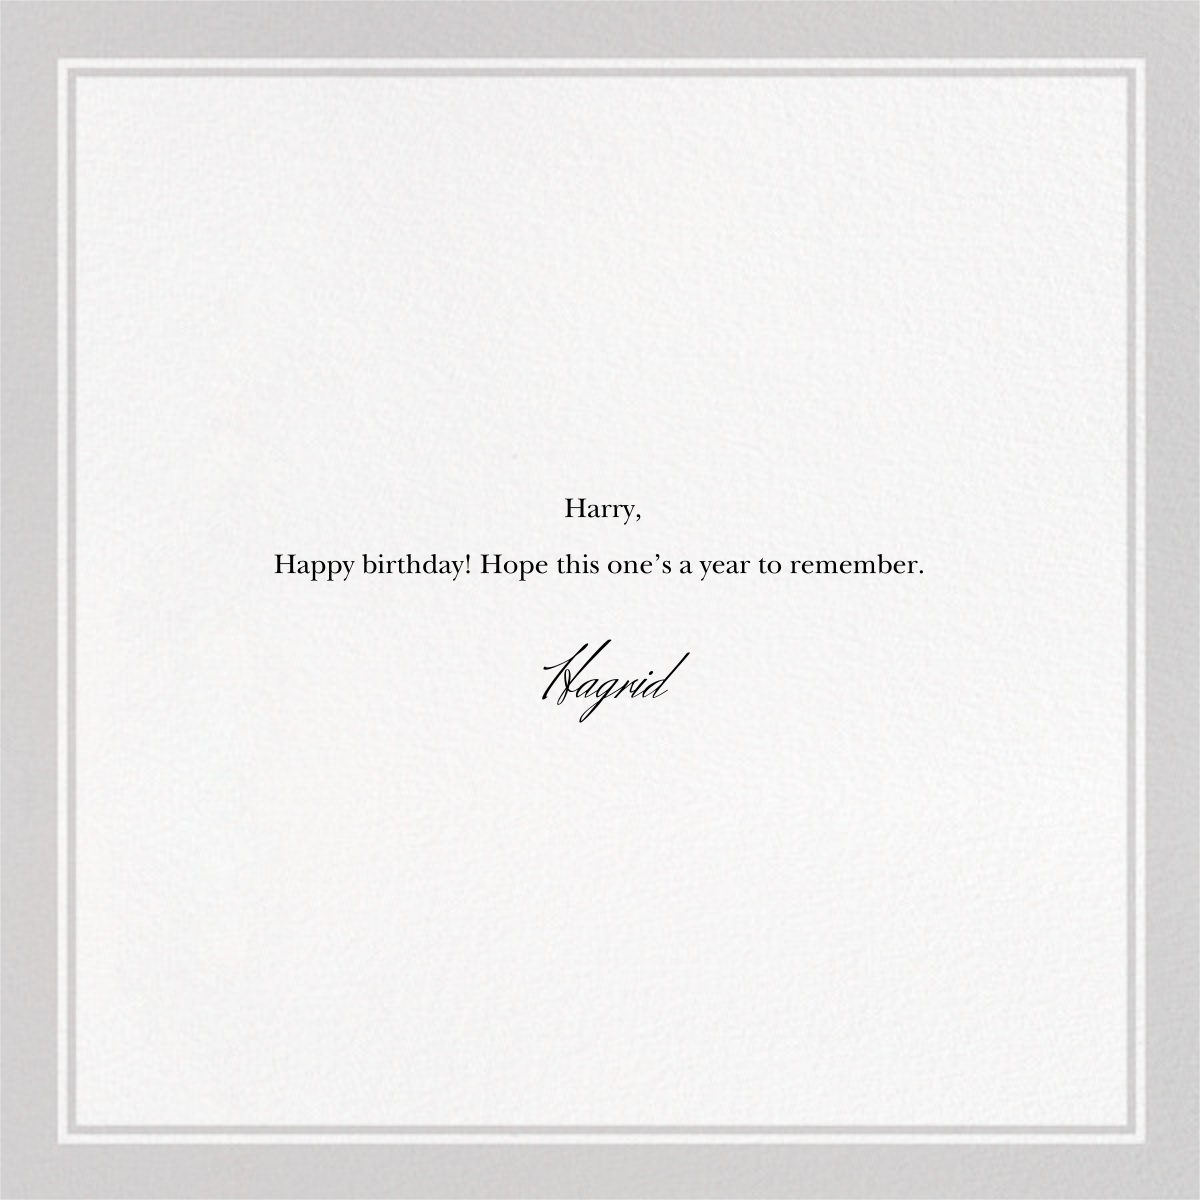 Baby Boomer - The New Yorker - Funny birthday eCards - card back